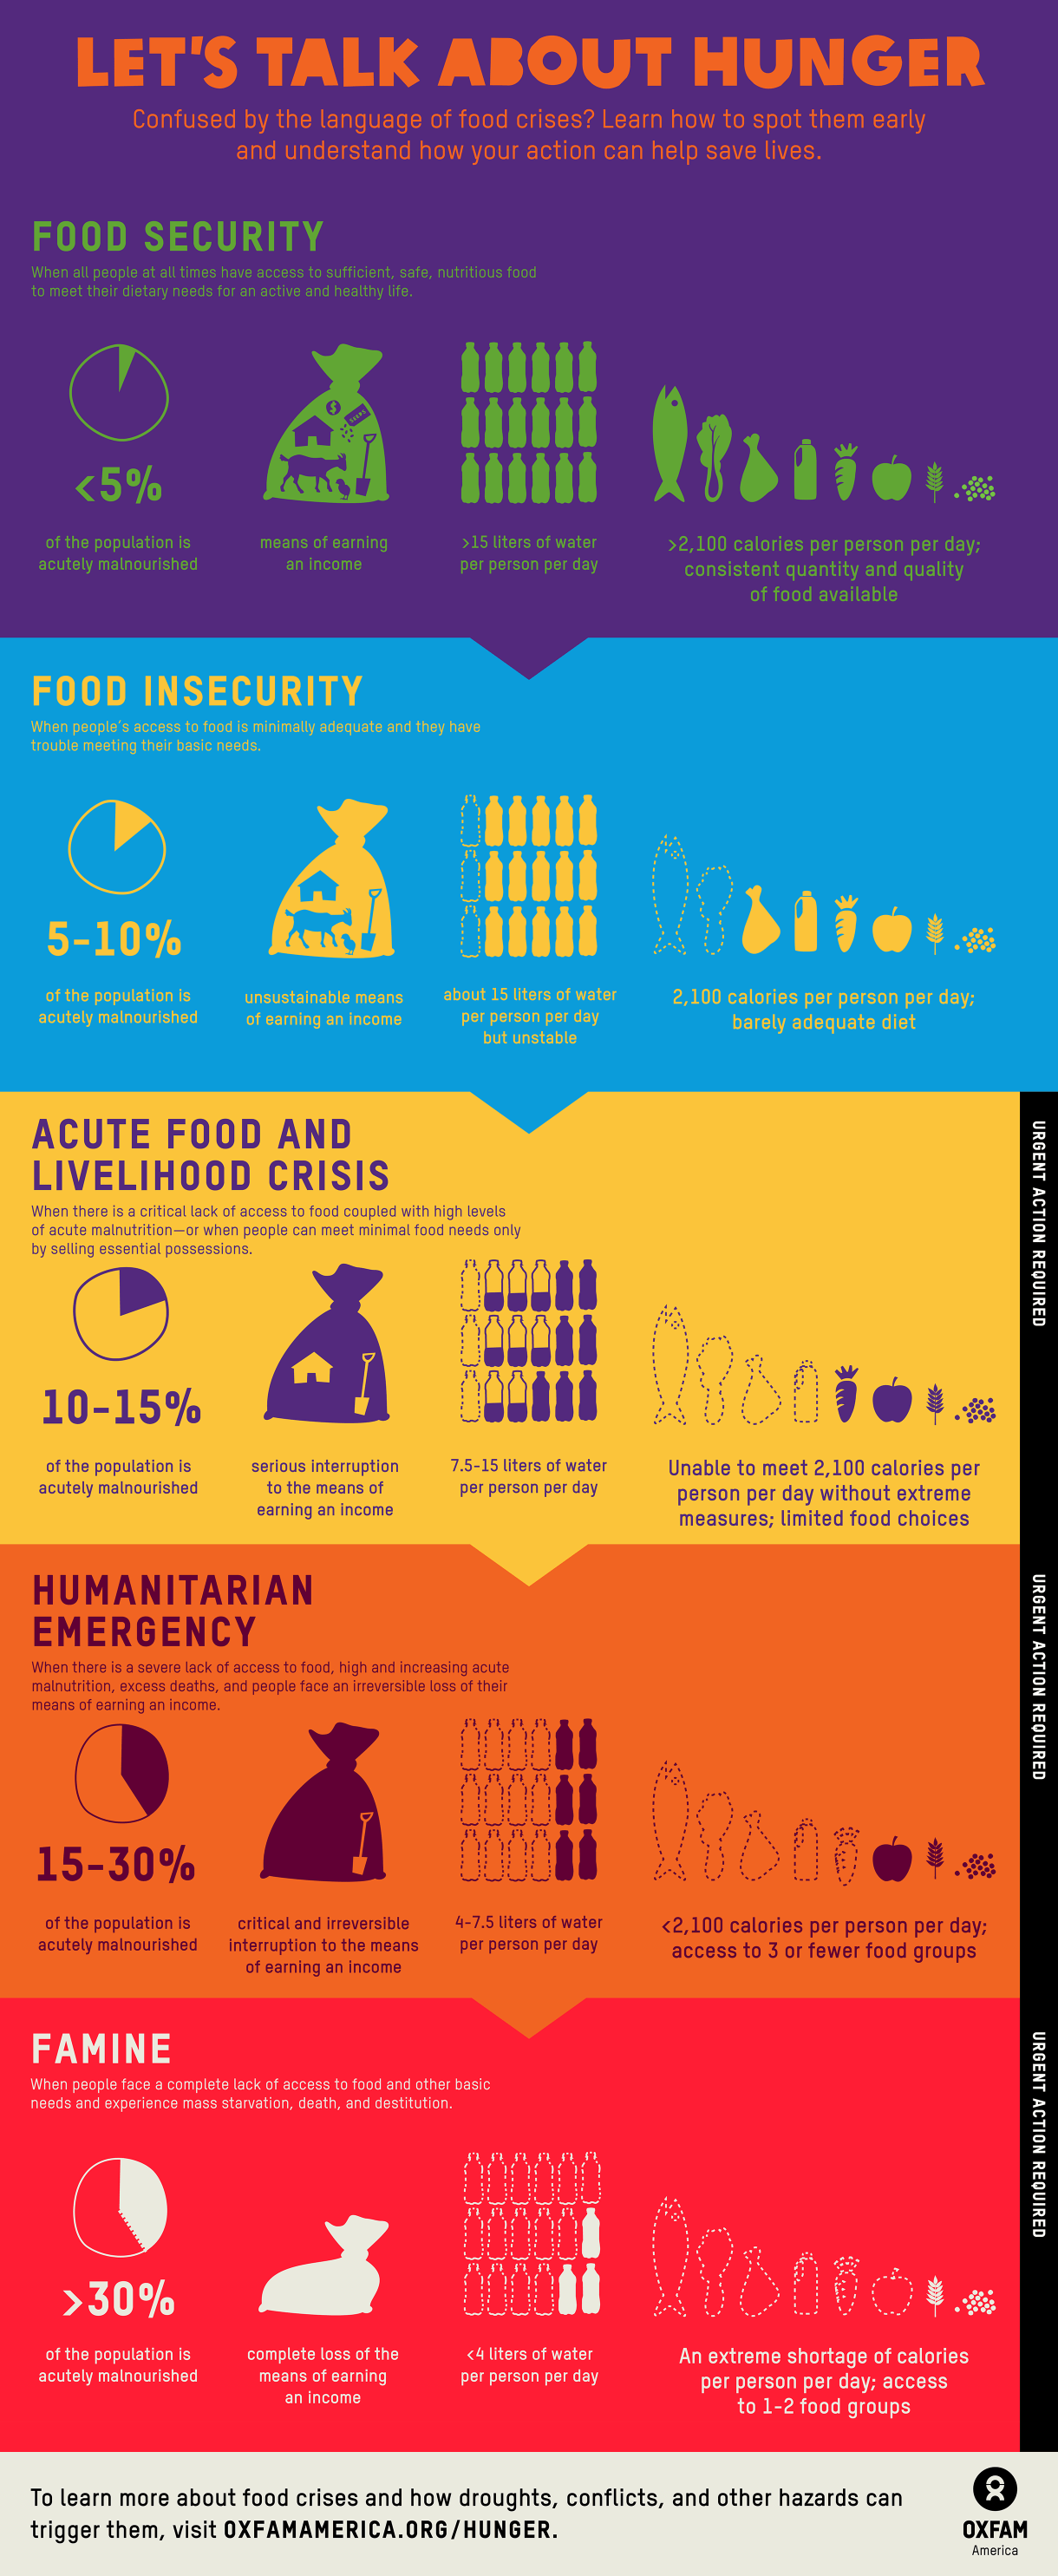 FoodSecurity-infographic-May-2014-FINAL-2440smaller